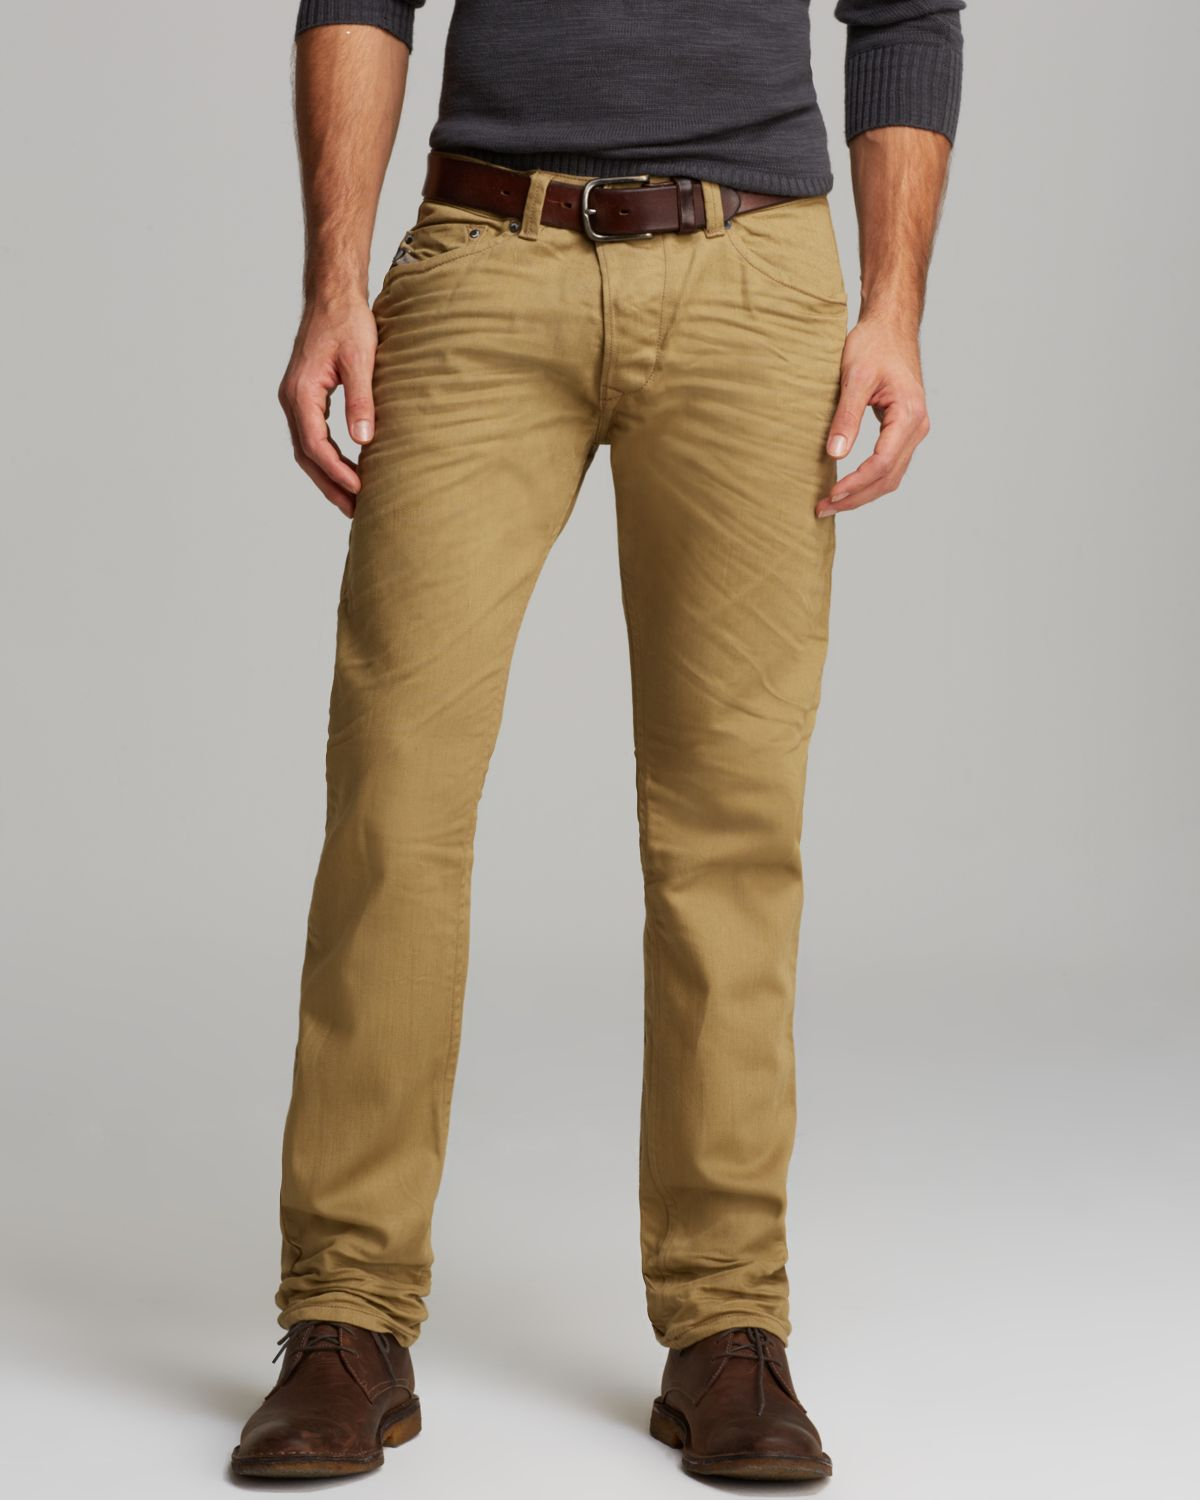 At PacSun, we're proud to offer the best collection of biker jeans for men around. Available in a variety of colors, washes, and materials, biker jeans are an incredibly versatile style of men's jeans. Replacing your regular pair of skinny jeans with a pair of stylish biker jeans can really elevate an outfit.